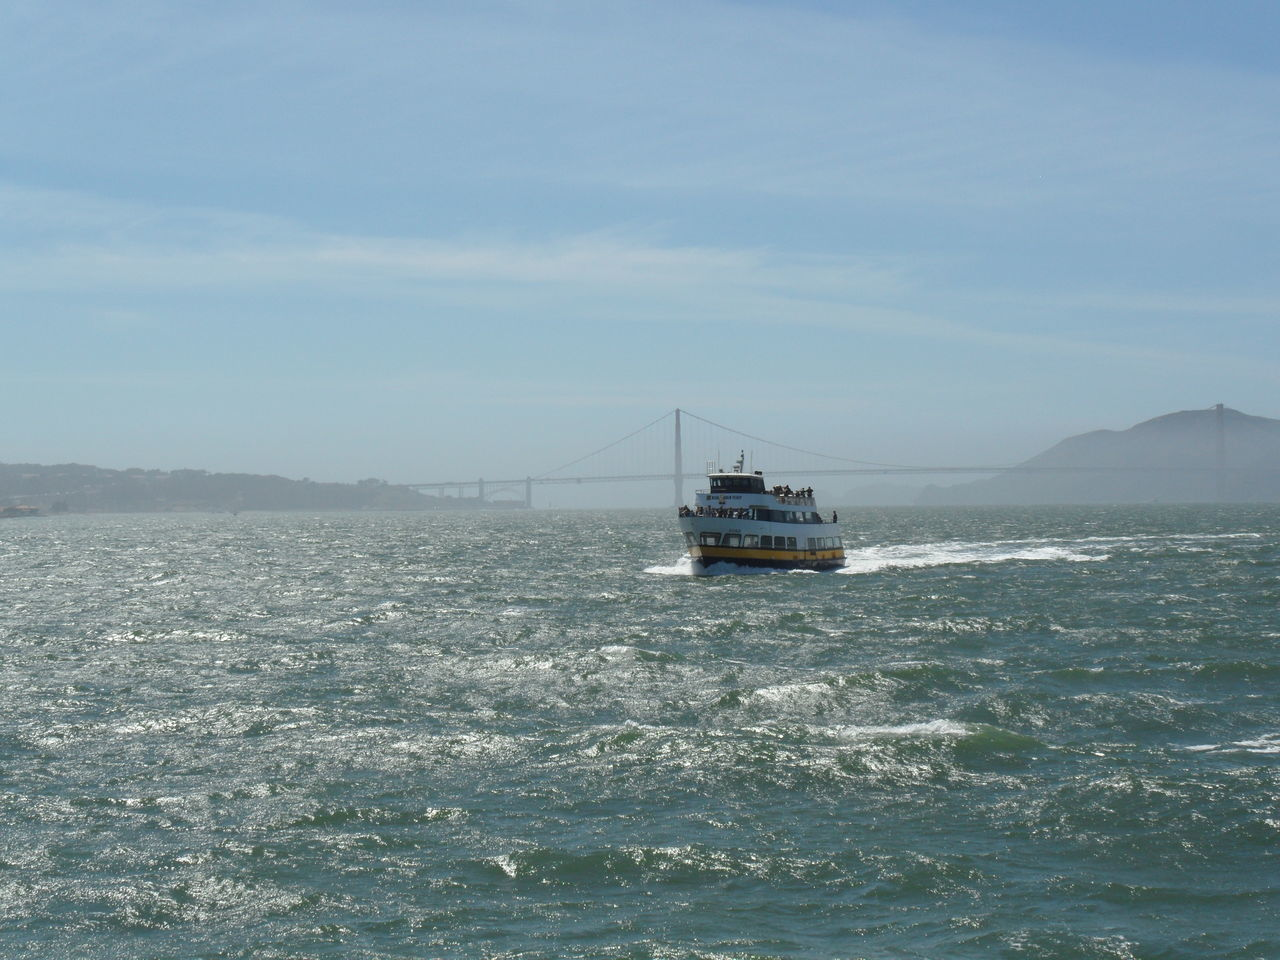 🛥 Beauty In Nature California Day Emblem  Foggy Morning Golden Gate Bridge Hanging Bridge Mode Of Transport Nature Nautical Vessel No People Outdoors Scenics Sea Ship Sky Tranquility Transportation Travel Destinations Water Waterfront Worldwide